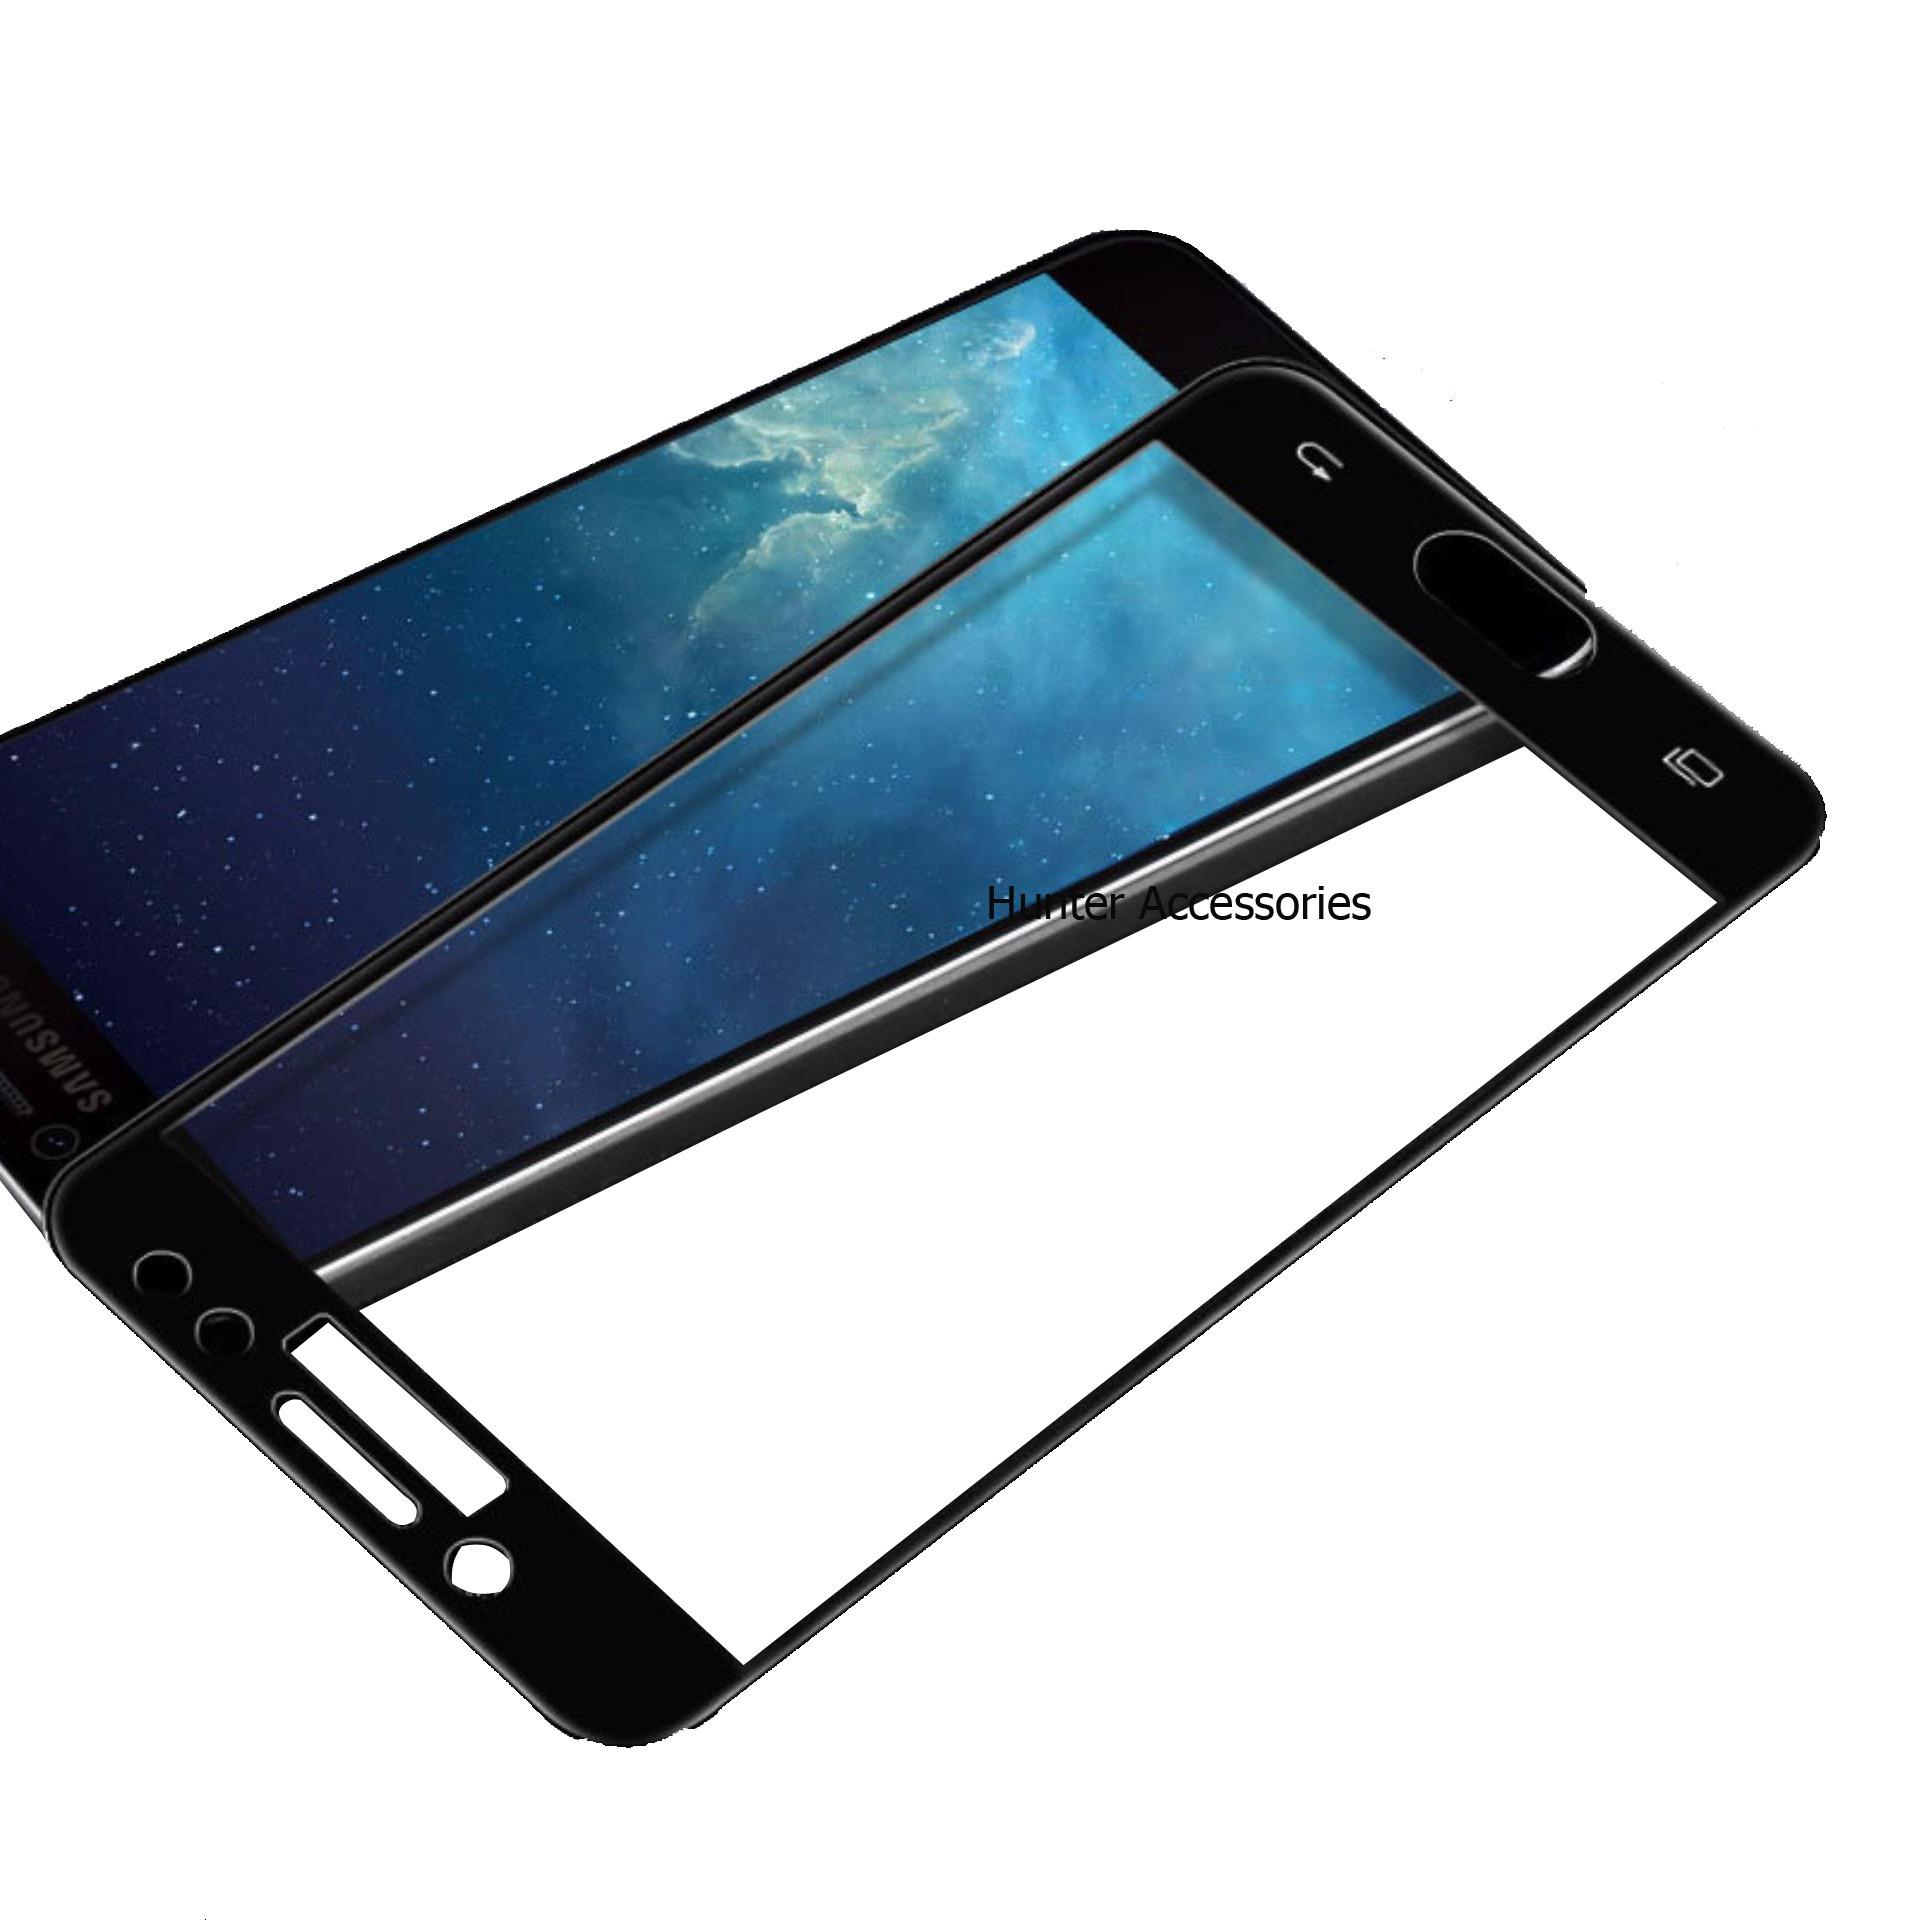 Tempered Glass Screen Protector / Anti Gores Kaca Samsung Galaxy J7 Plus / J7+ - Hitam